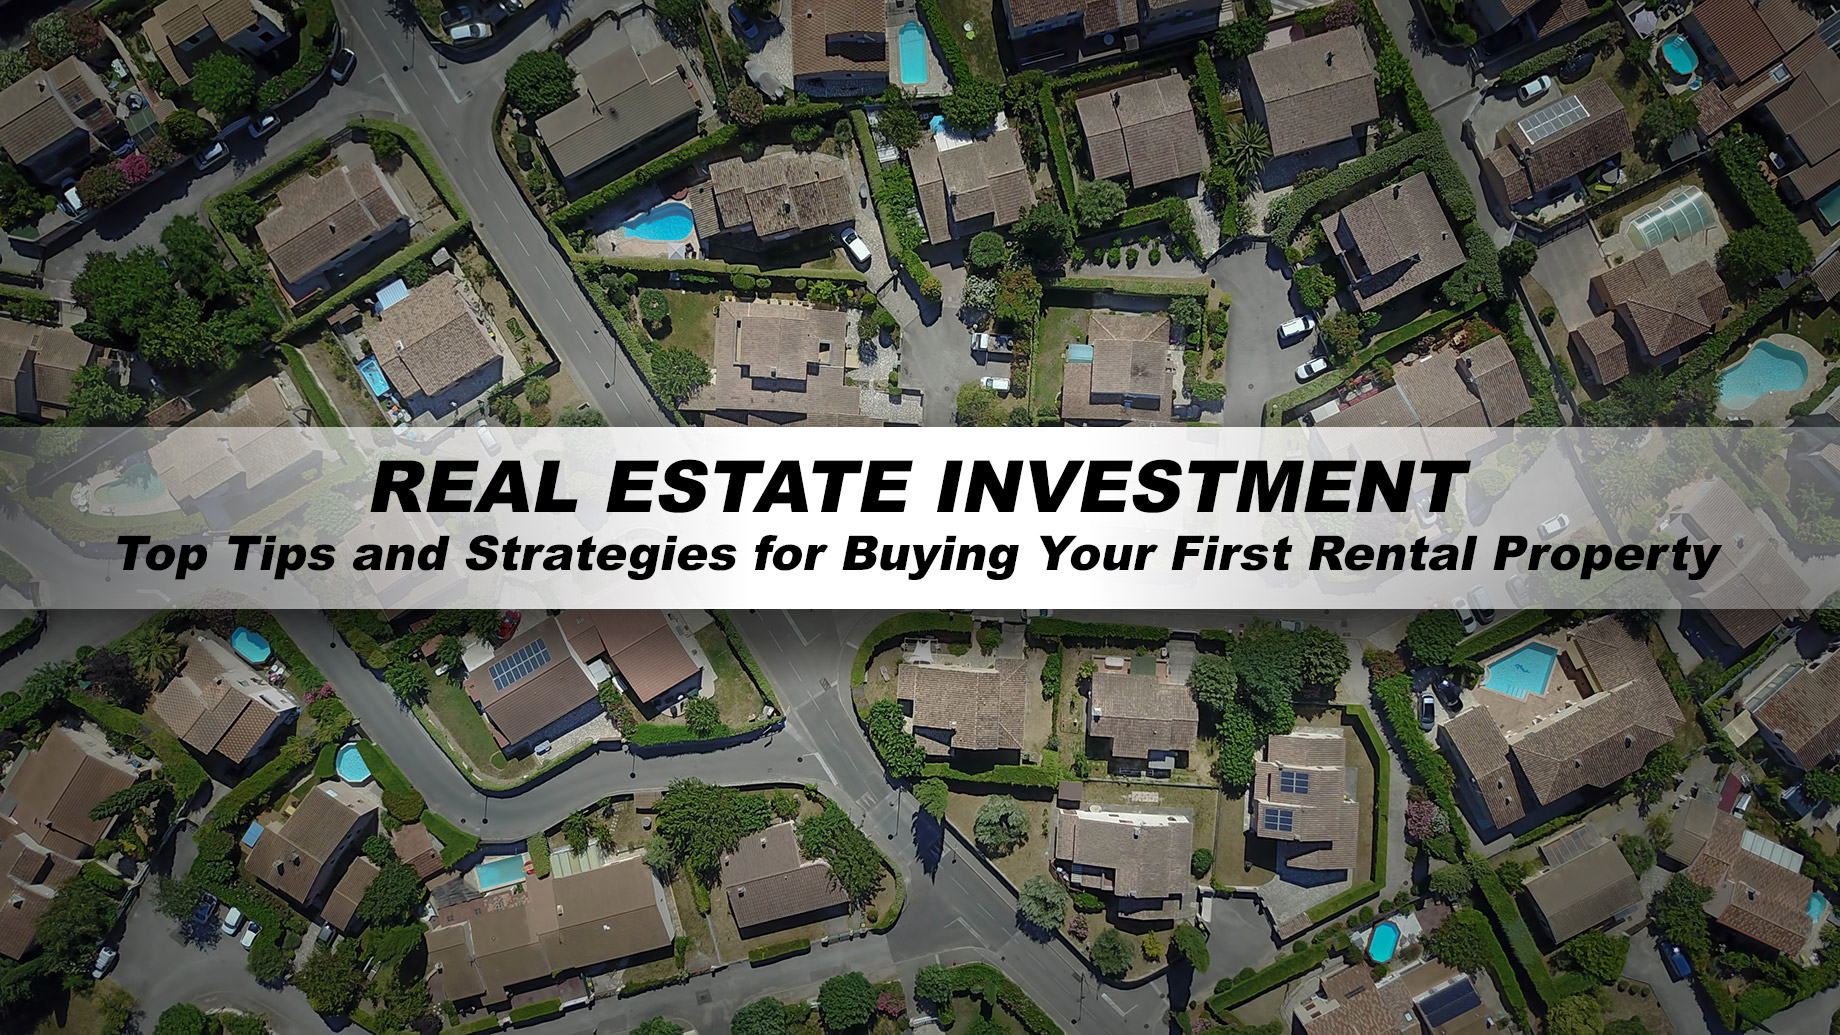 Real Estate Investment - Top Tips and Strategies for Buying Your First Rental Property